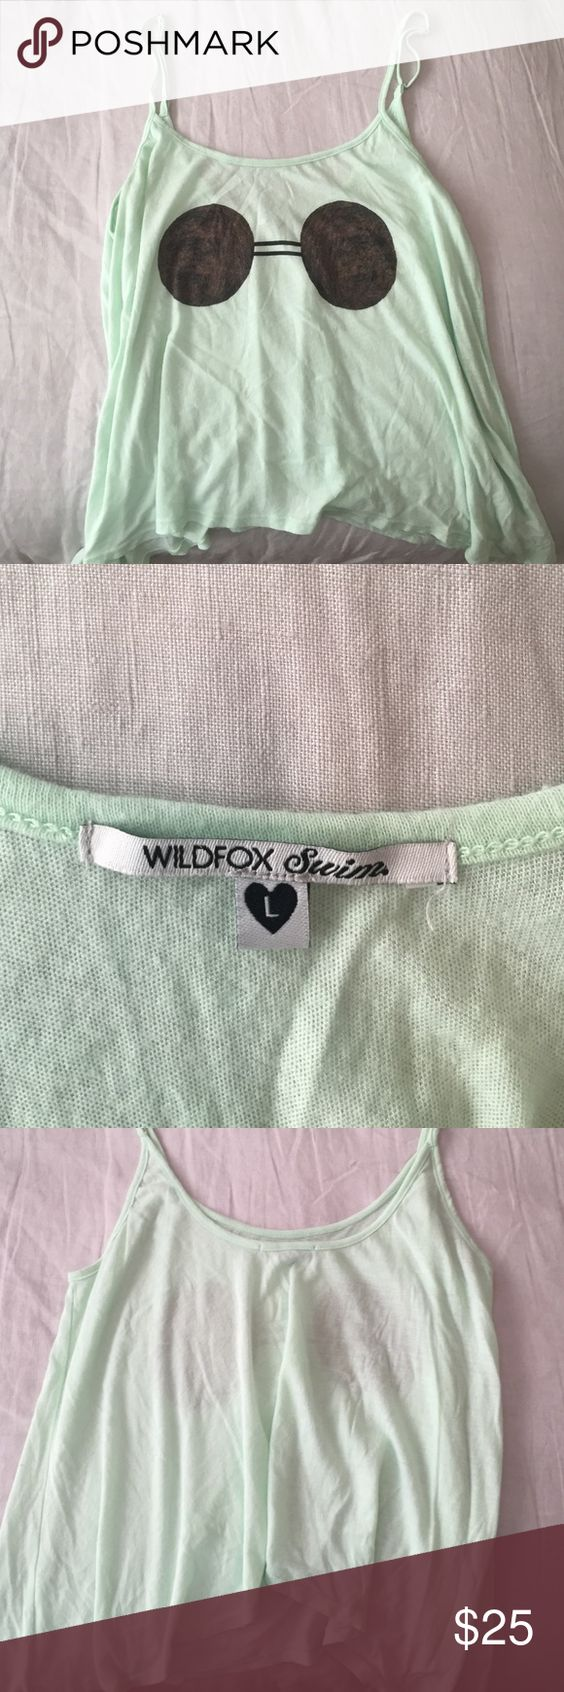 Wild fox Swimsuit Cover-Up Cotton and polyester blend tank top for over a swim suit or with a bandeau and some cute cut off shorts! It's from the wildfox swim line and I have only worn it maybe 3 times. No holes, no pulling, LIKE NEW condition. Wildfox Swim Coverups